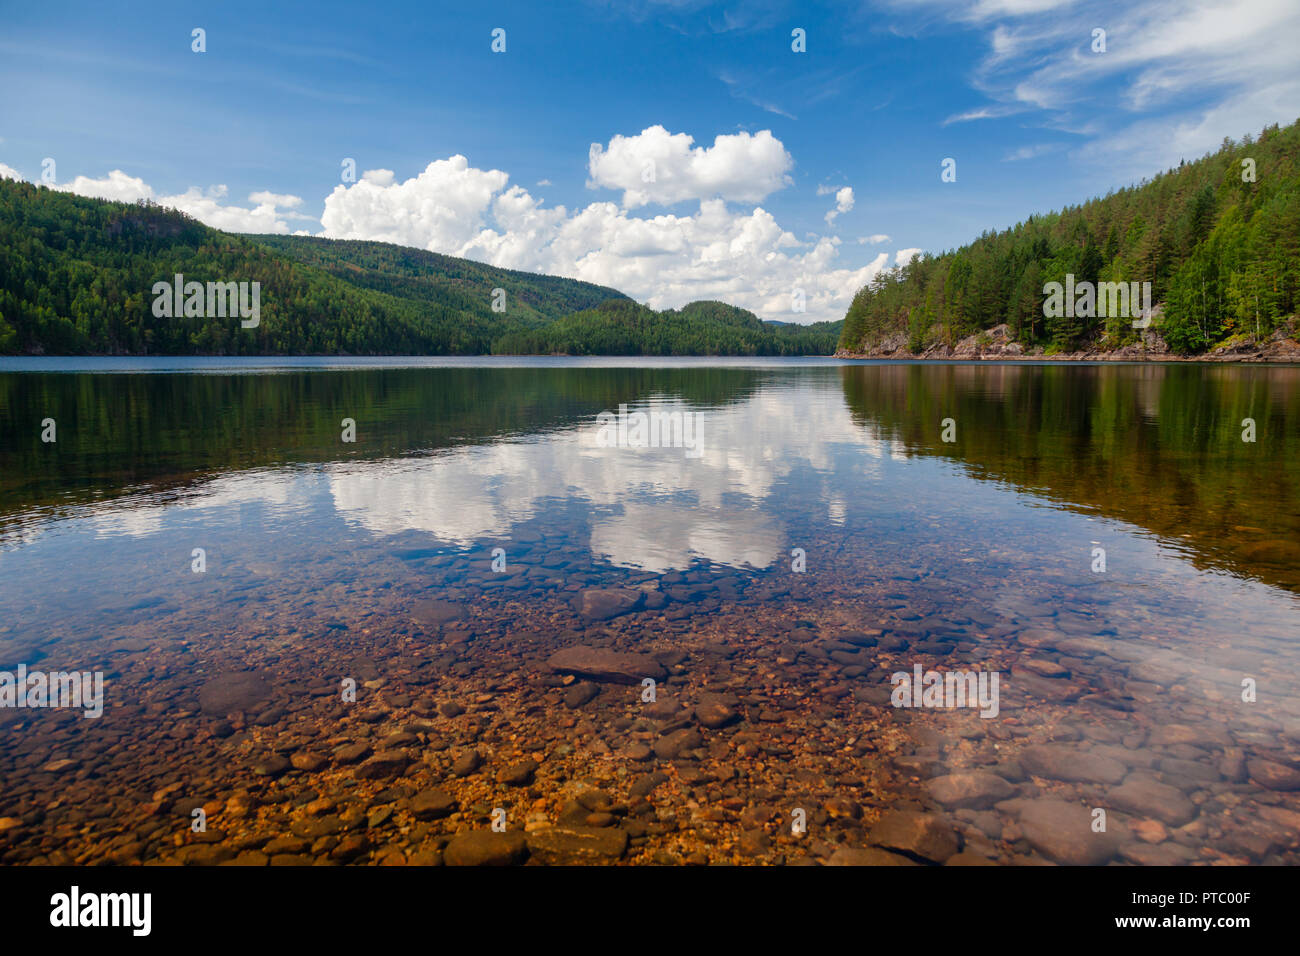 Crystal clear water of  Lake Langen in Telemark County, Southern Norway - Stock Image